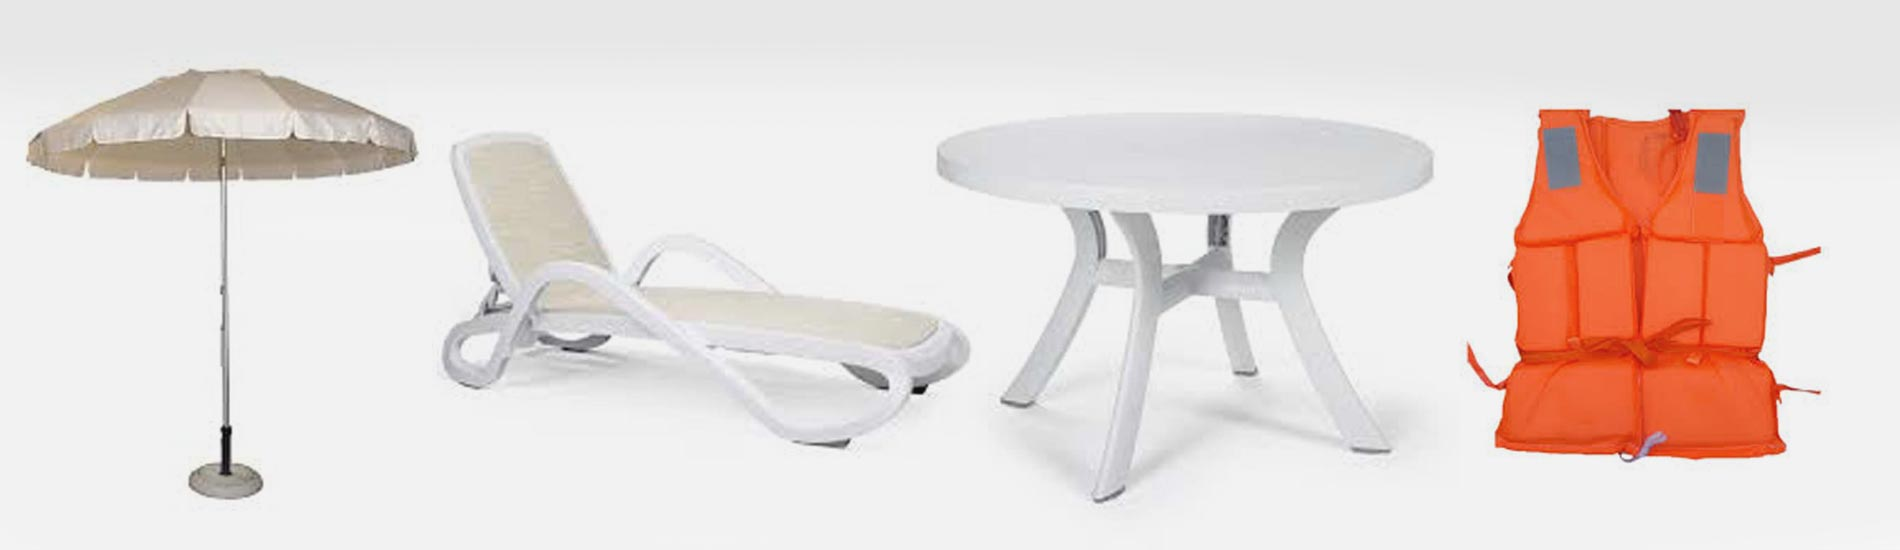 swimming pool bed suppliers in uae - swimming pool furniture